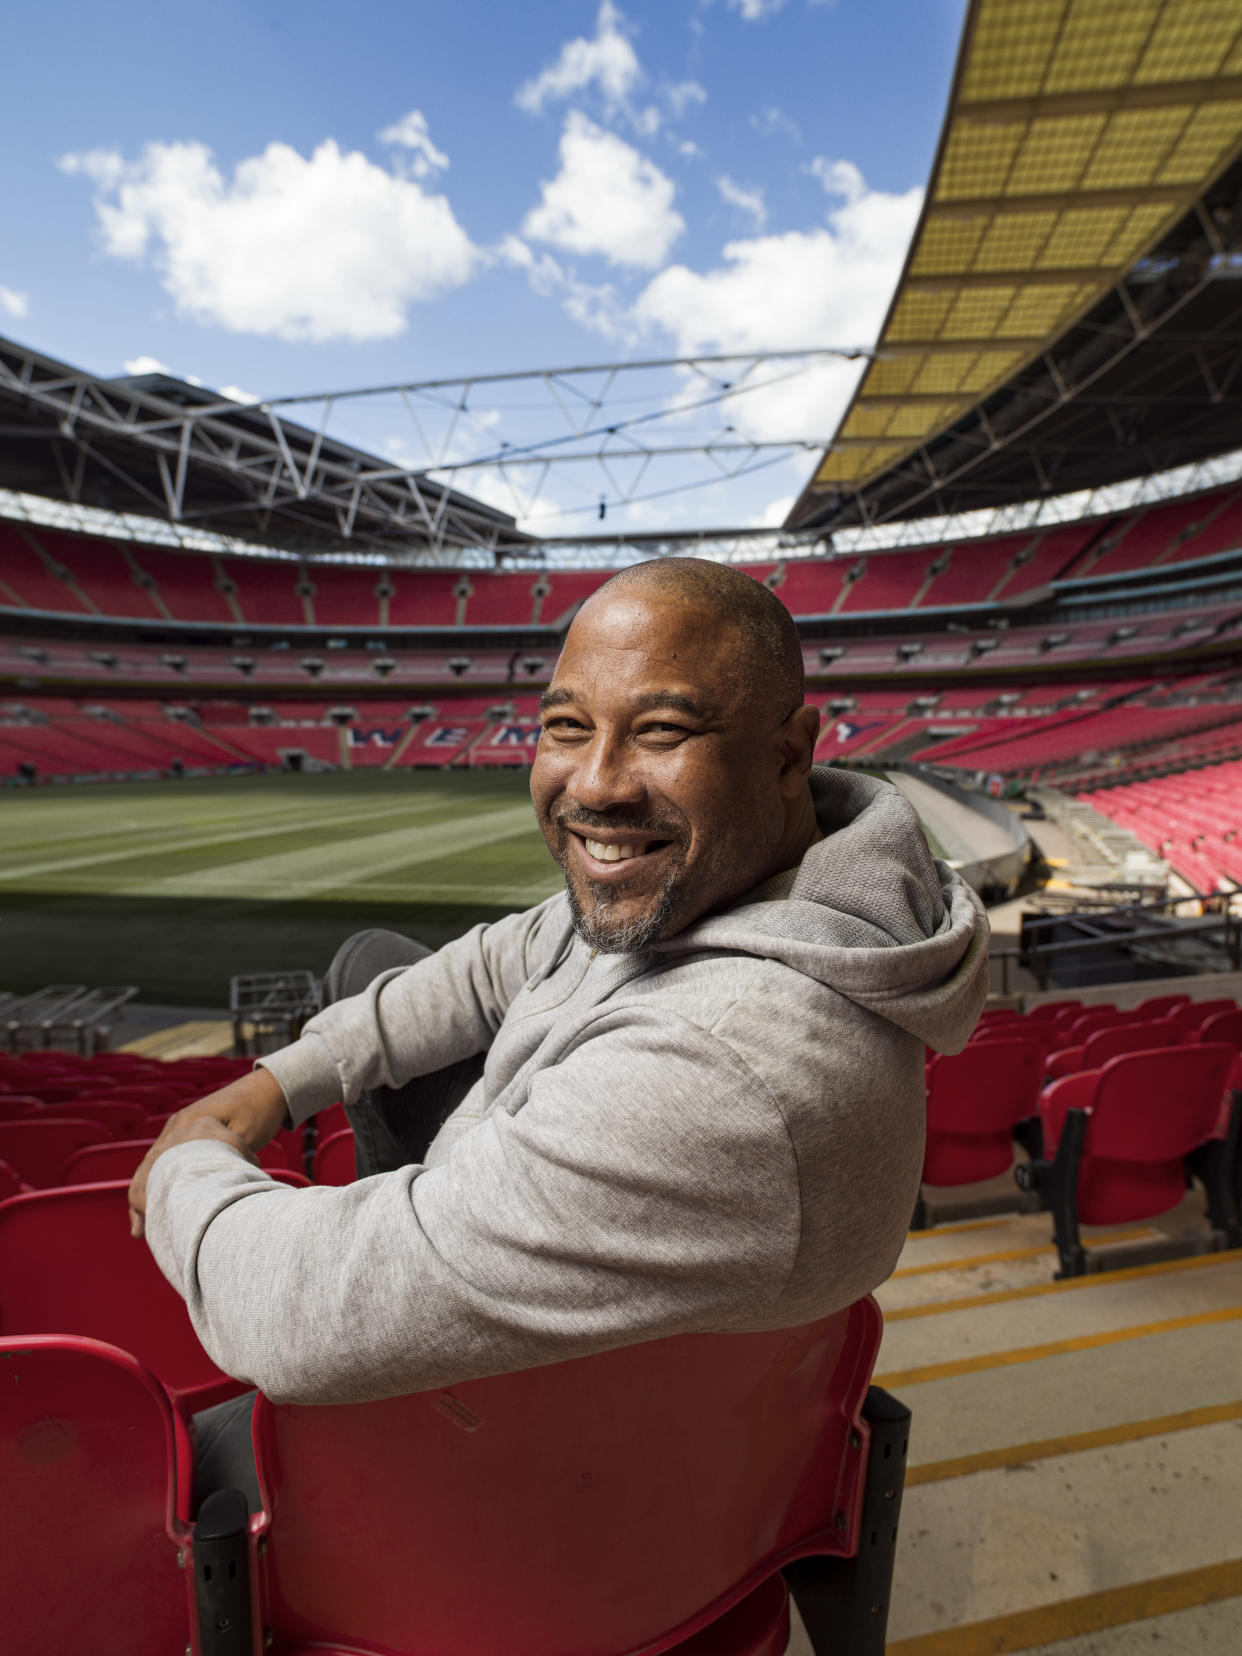 Former England ace John Barnes loved returning to his happy place - under the iconic arch of Wembley Stadium